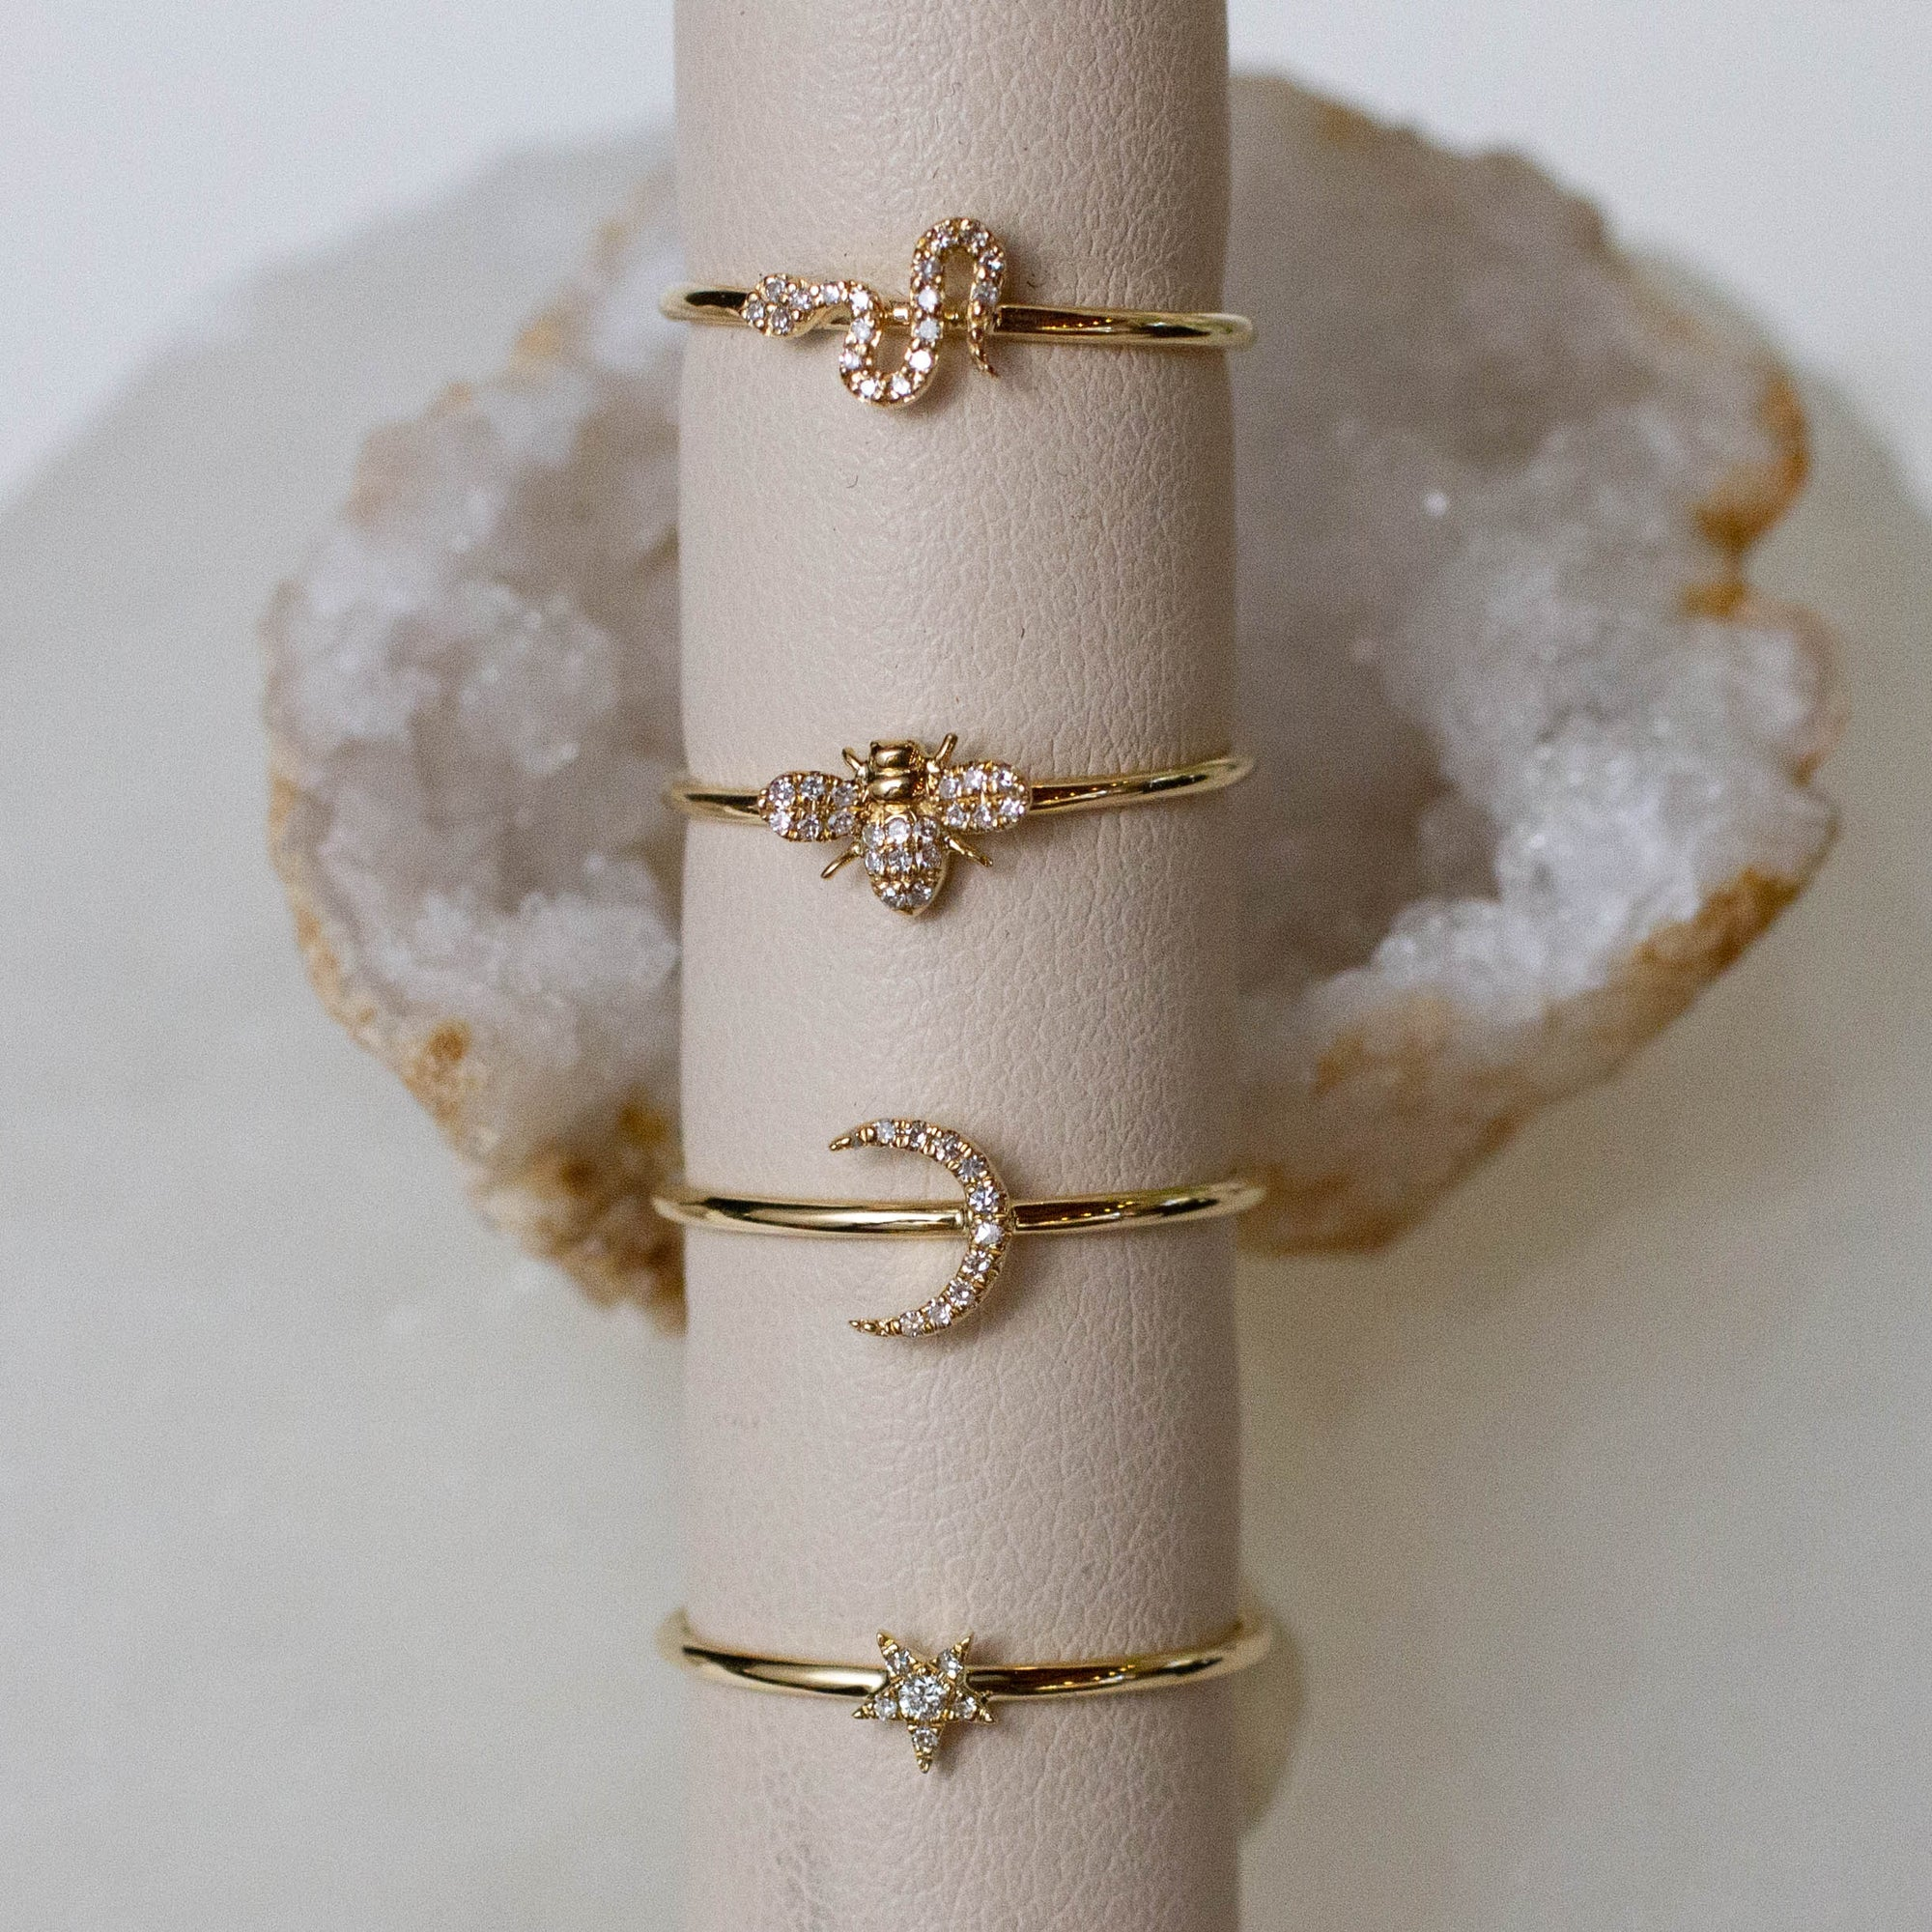 14K Diamond Petite Snake Ring